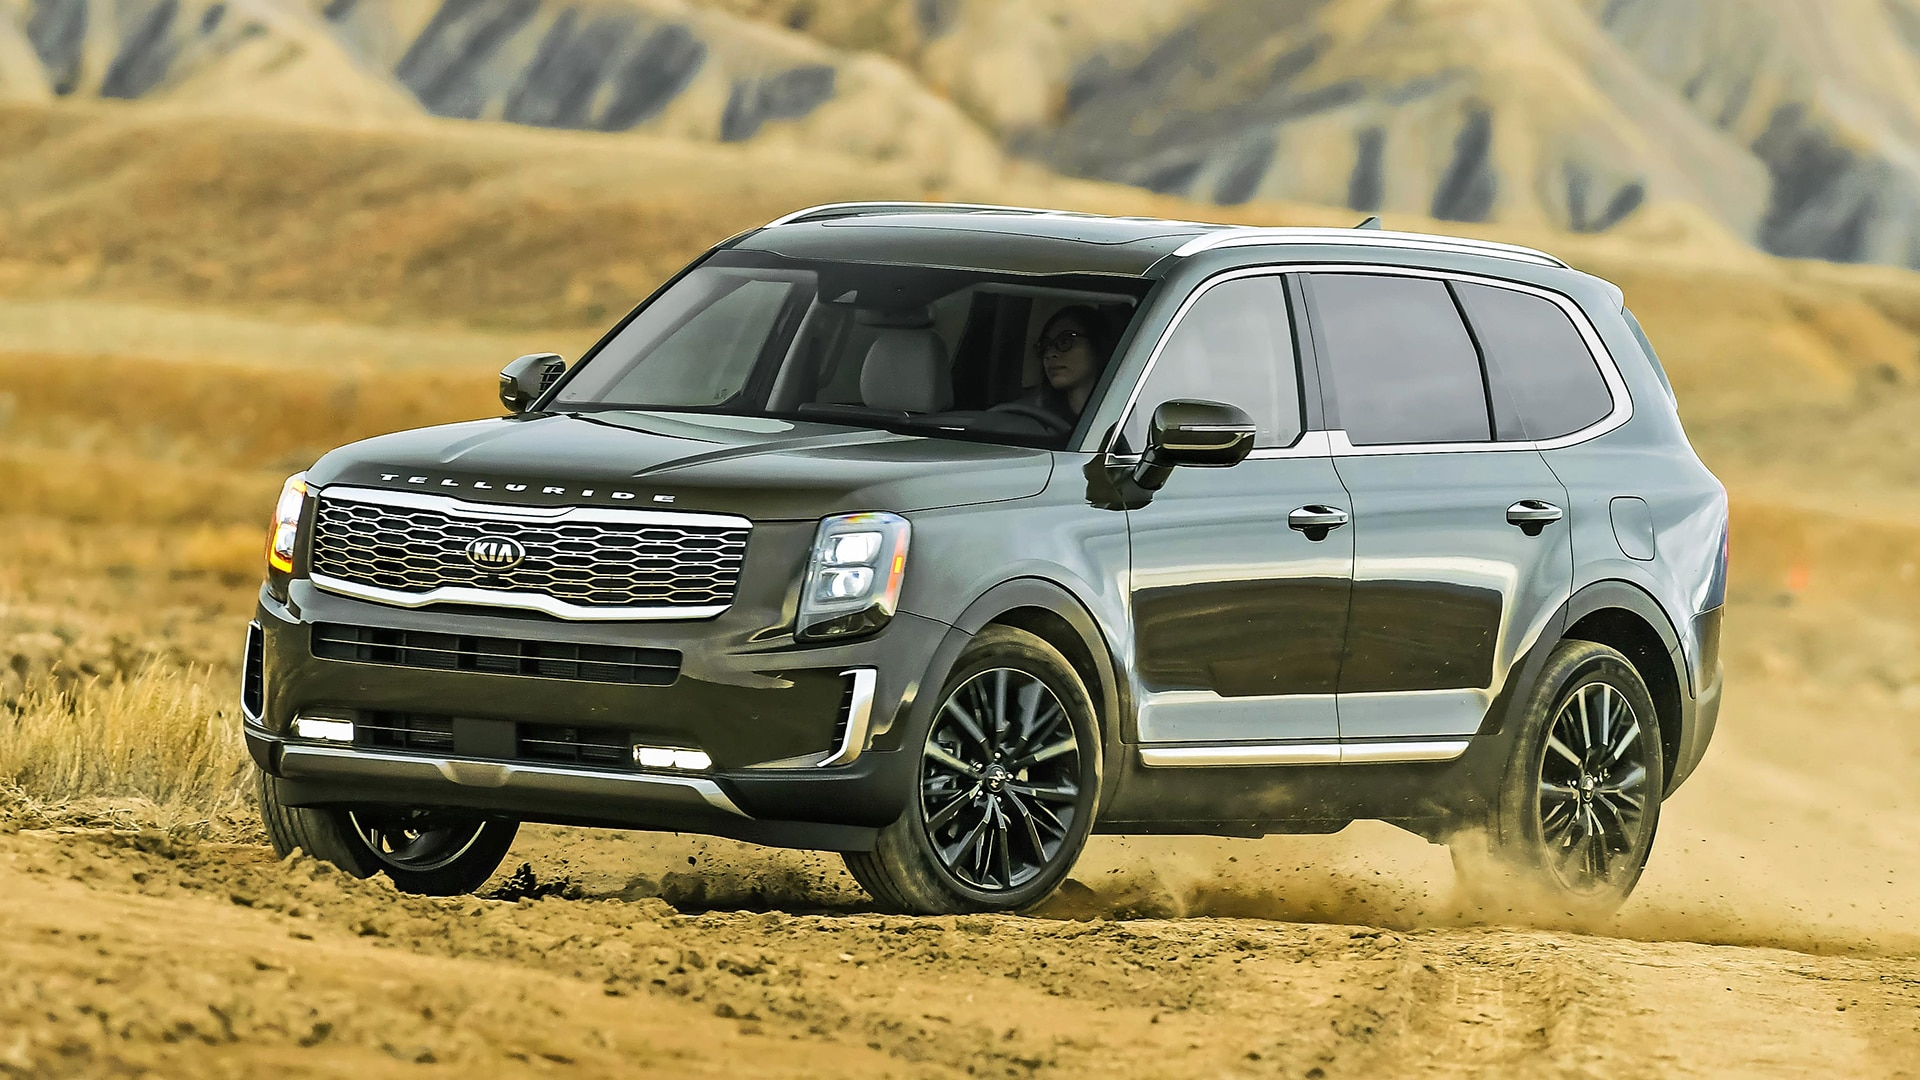 2020 Kia Telluride First Drive Review Classy and Comfortable 1920x1080